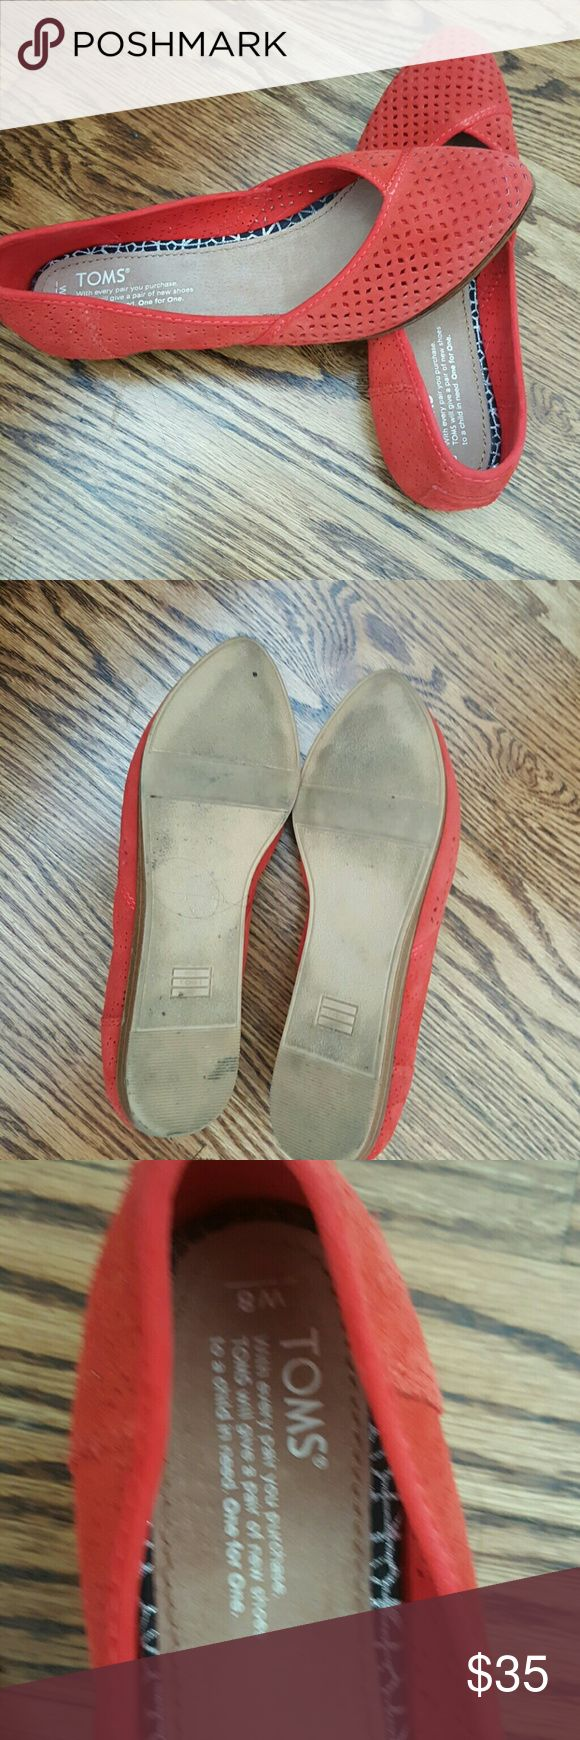 Toms Women's Flats Lightly worn. One seam tearing slightly - easy to fix.  Pretty red waffle style.  Very Comfy. TOMS Shoes Flats & Loafers